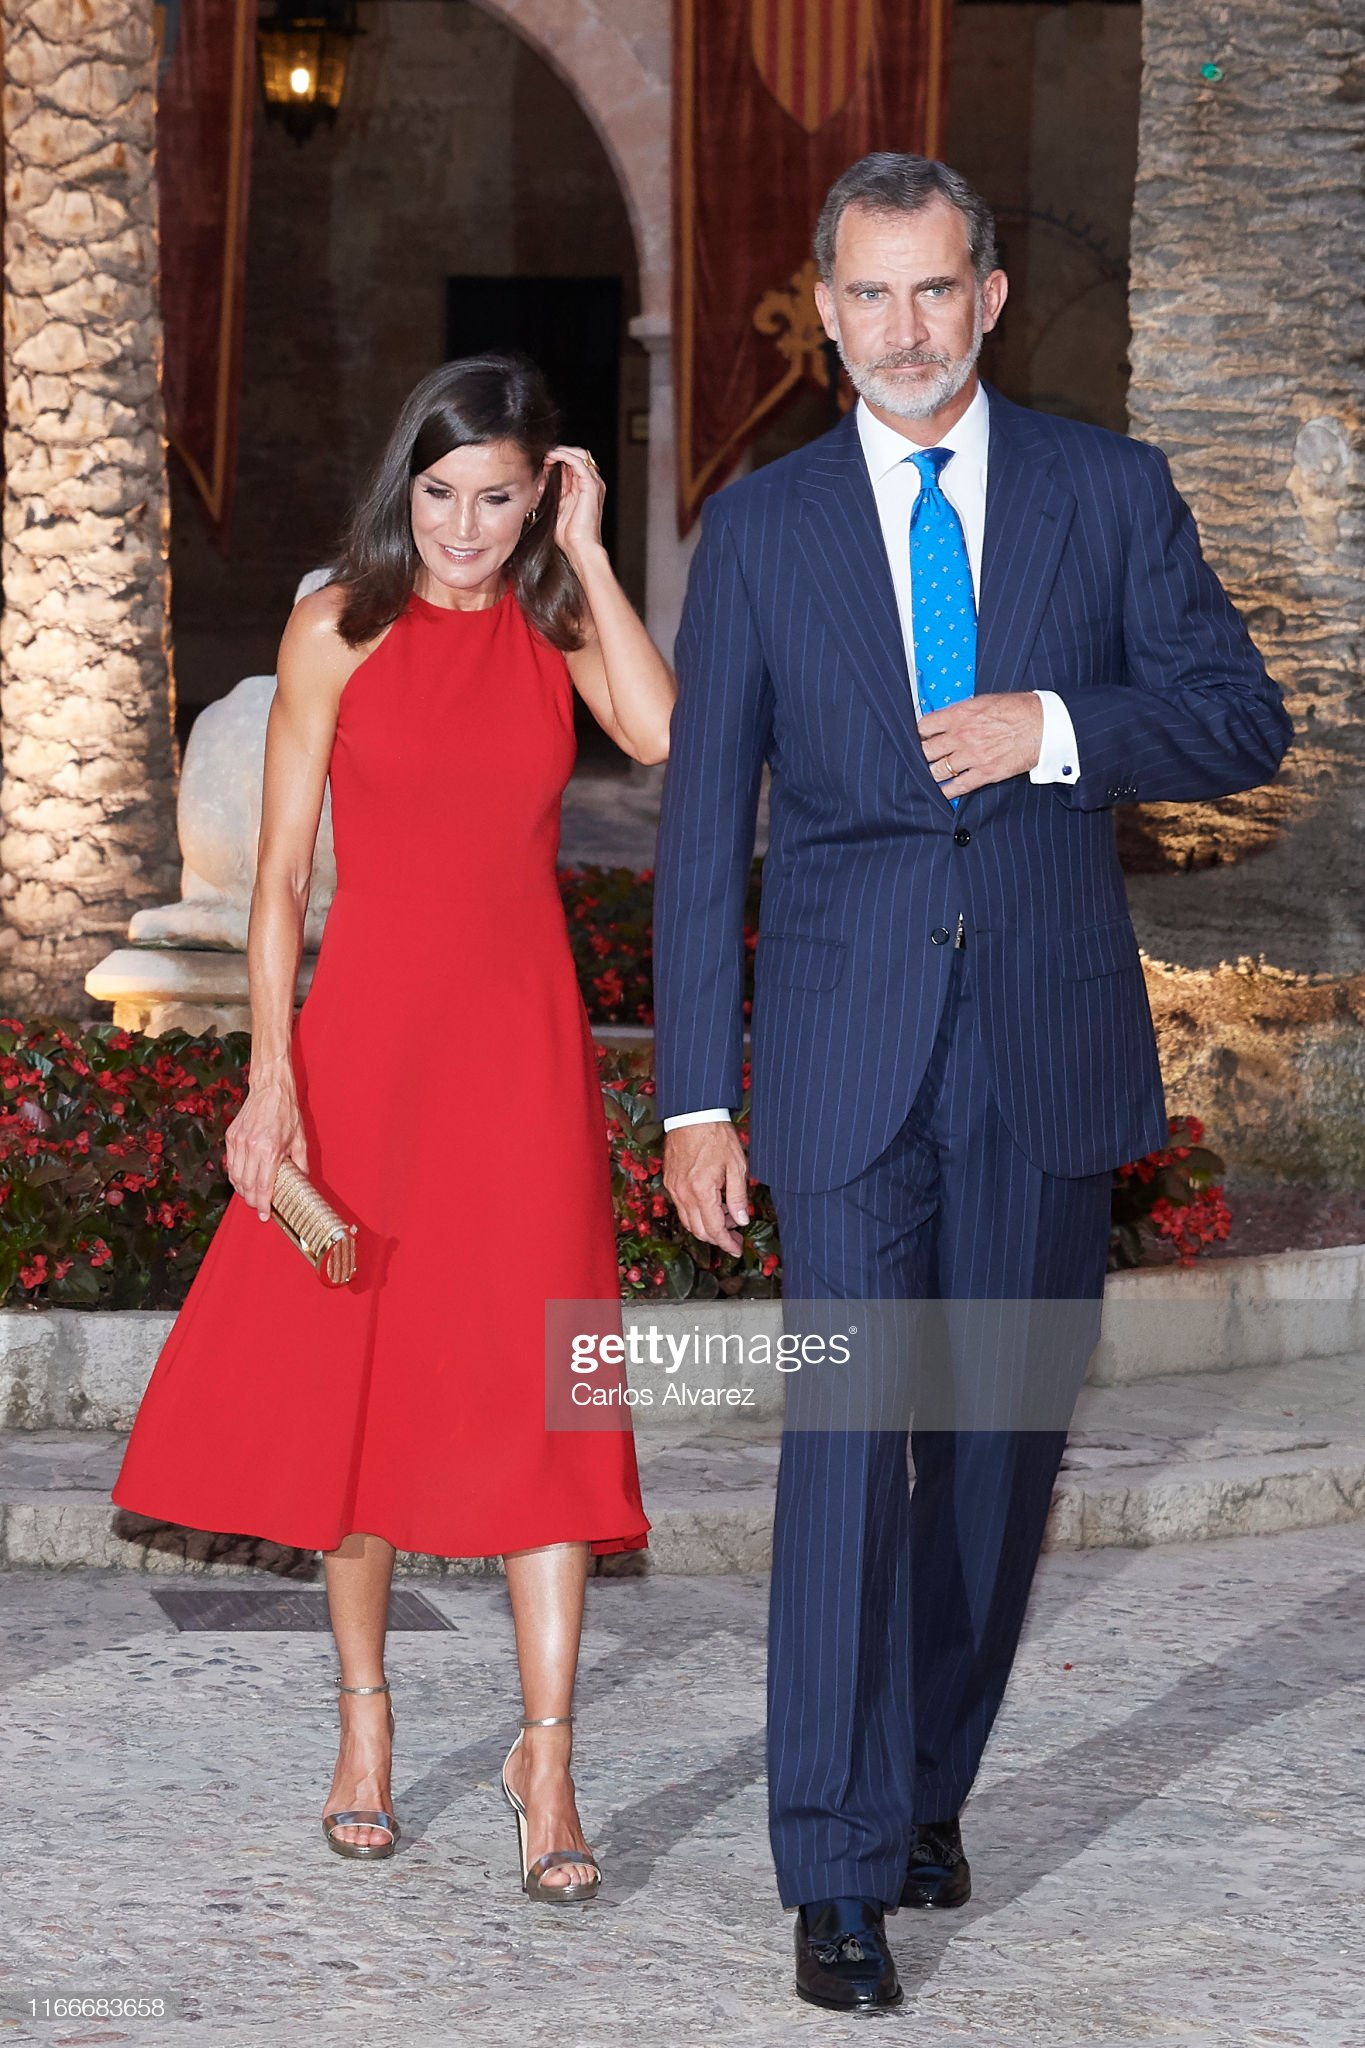 https://media.gettyimages.com/photos/king-felipe-vi-of-spain-and-queen-letizia-of-spain-host-a-dinner-for-picture-id1166683658?s=2048x2048